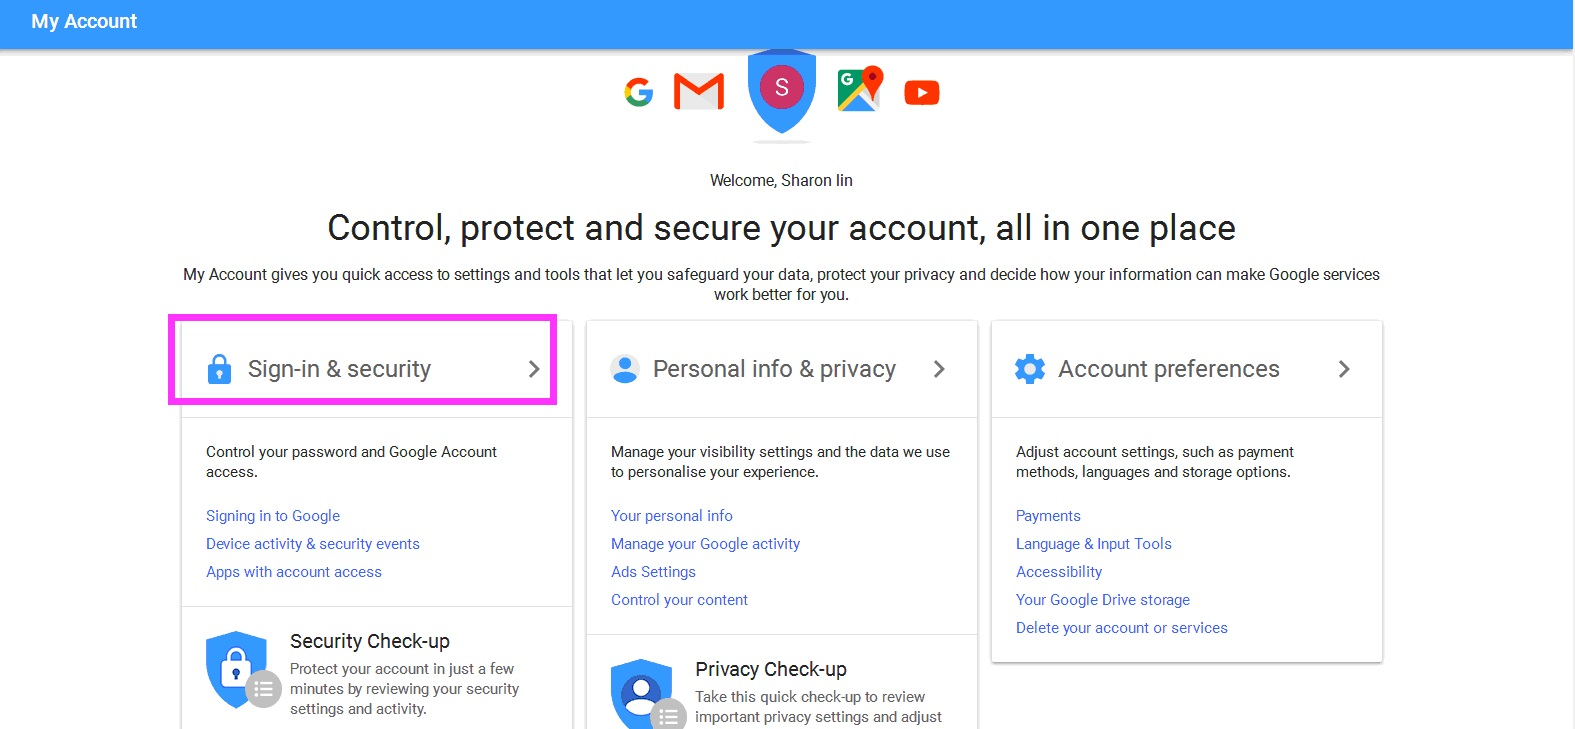 NVR】How to use a new Gmail mailbox account to set NVR mail alarms?